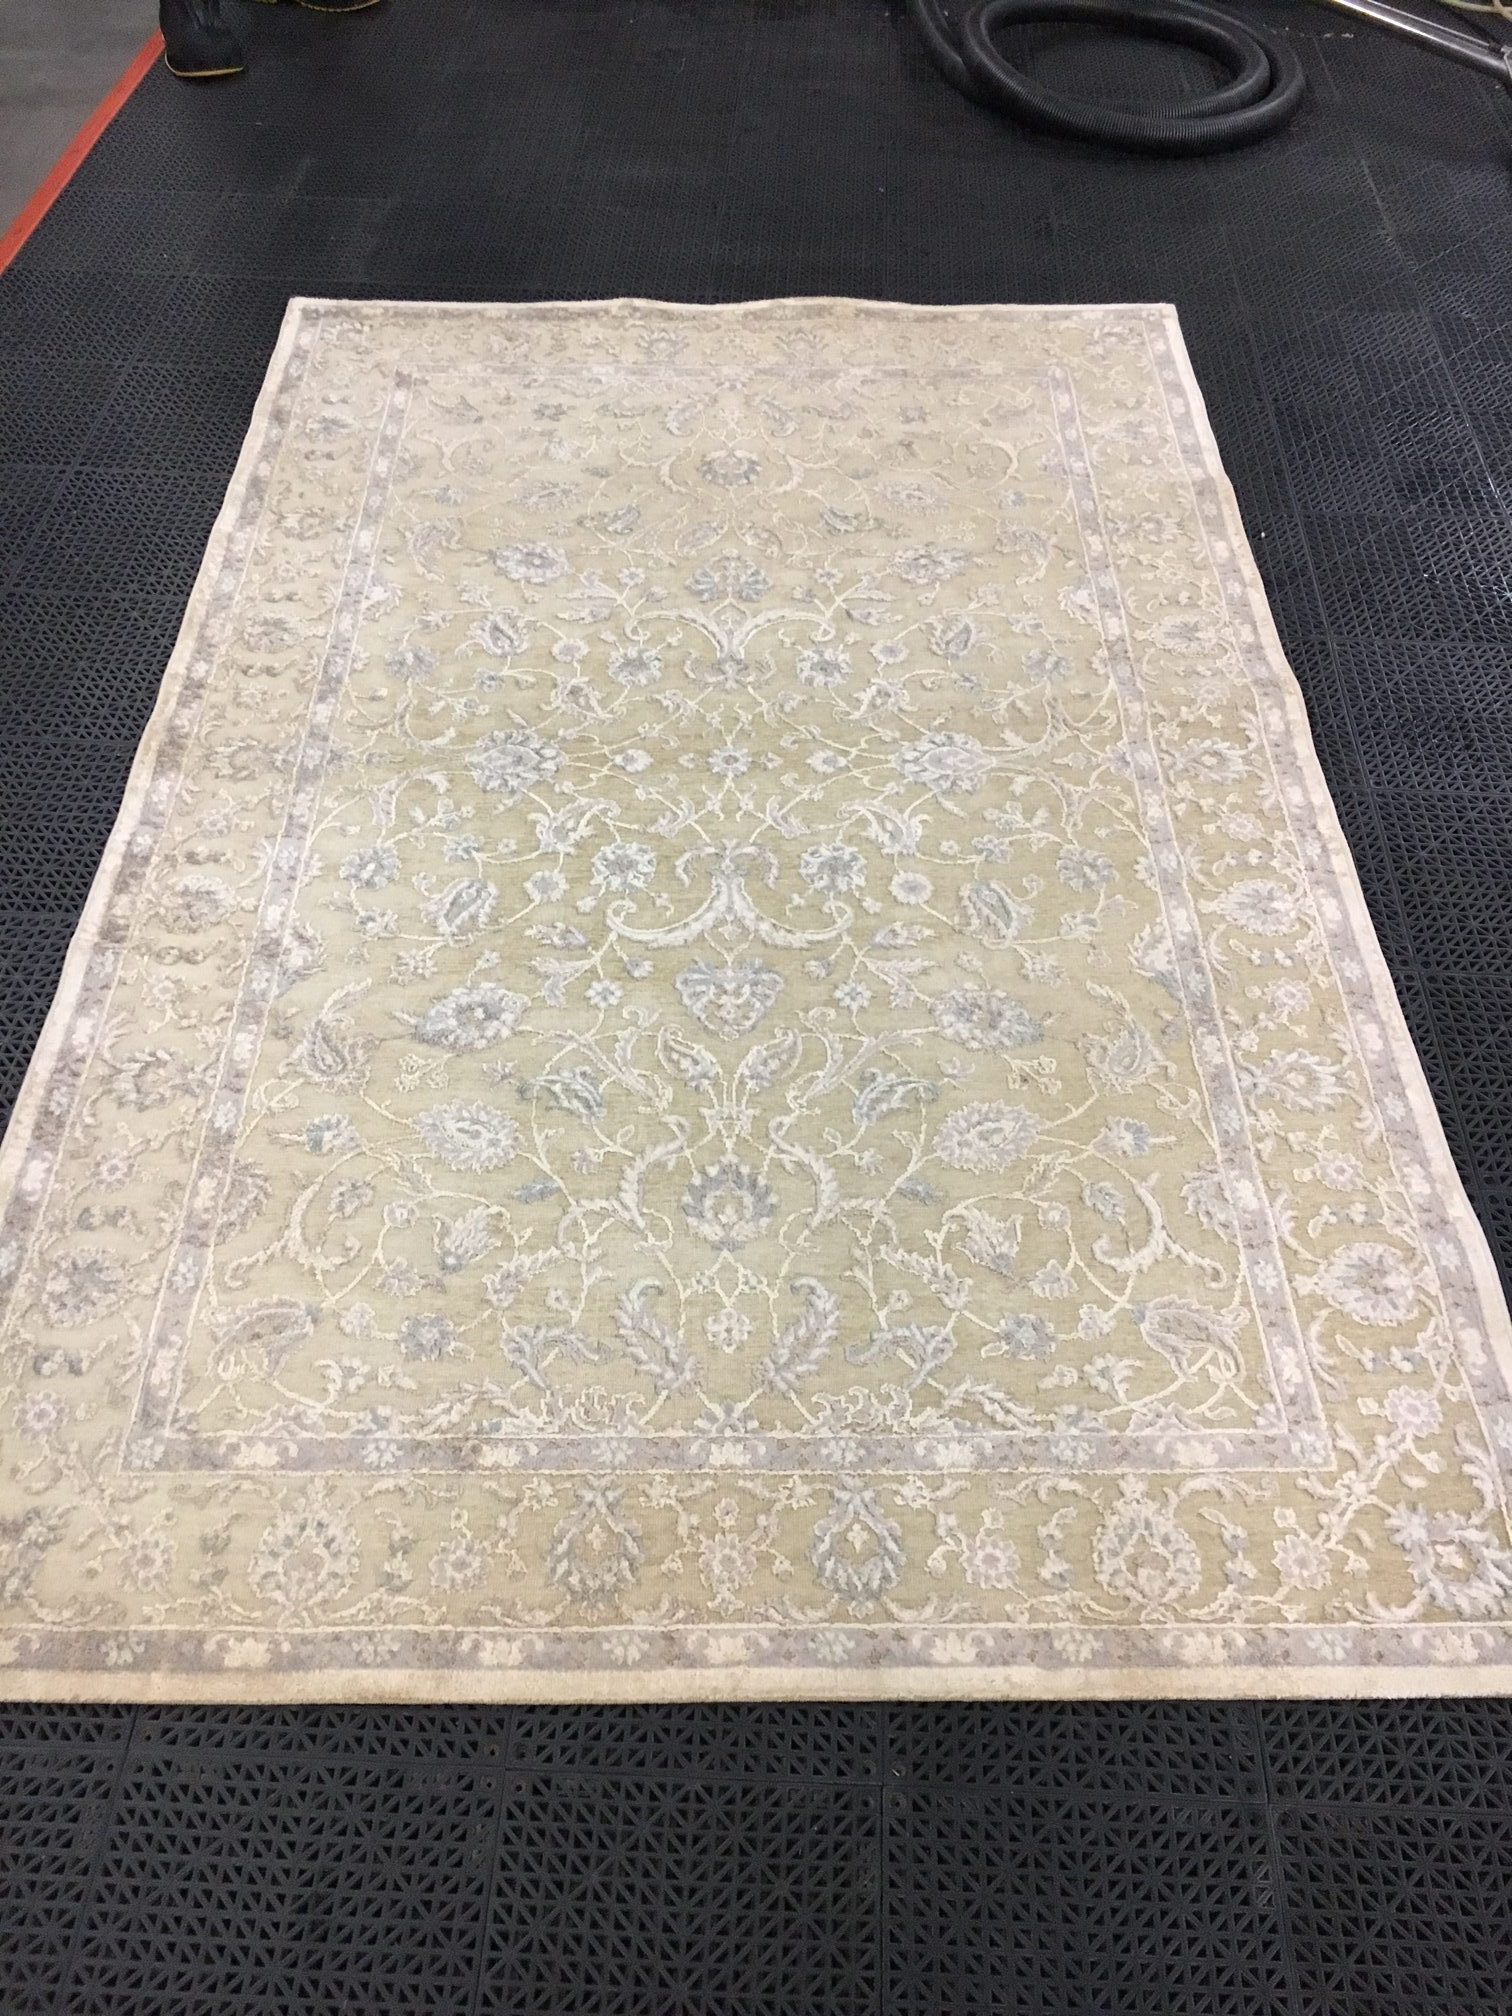 Area Rug Cleaning Knoxville Tn Uniquely Modern Rugs